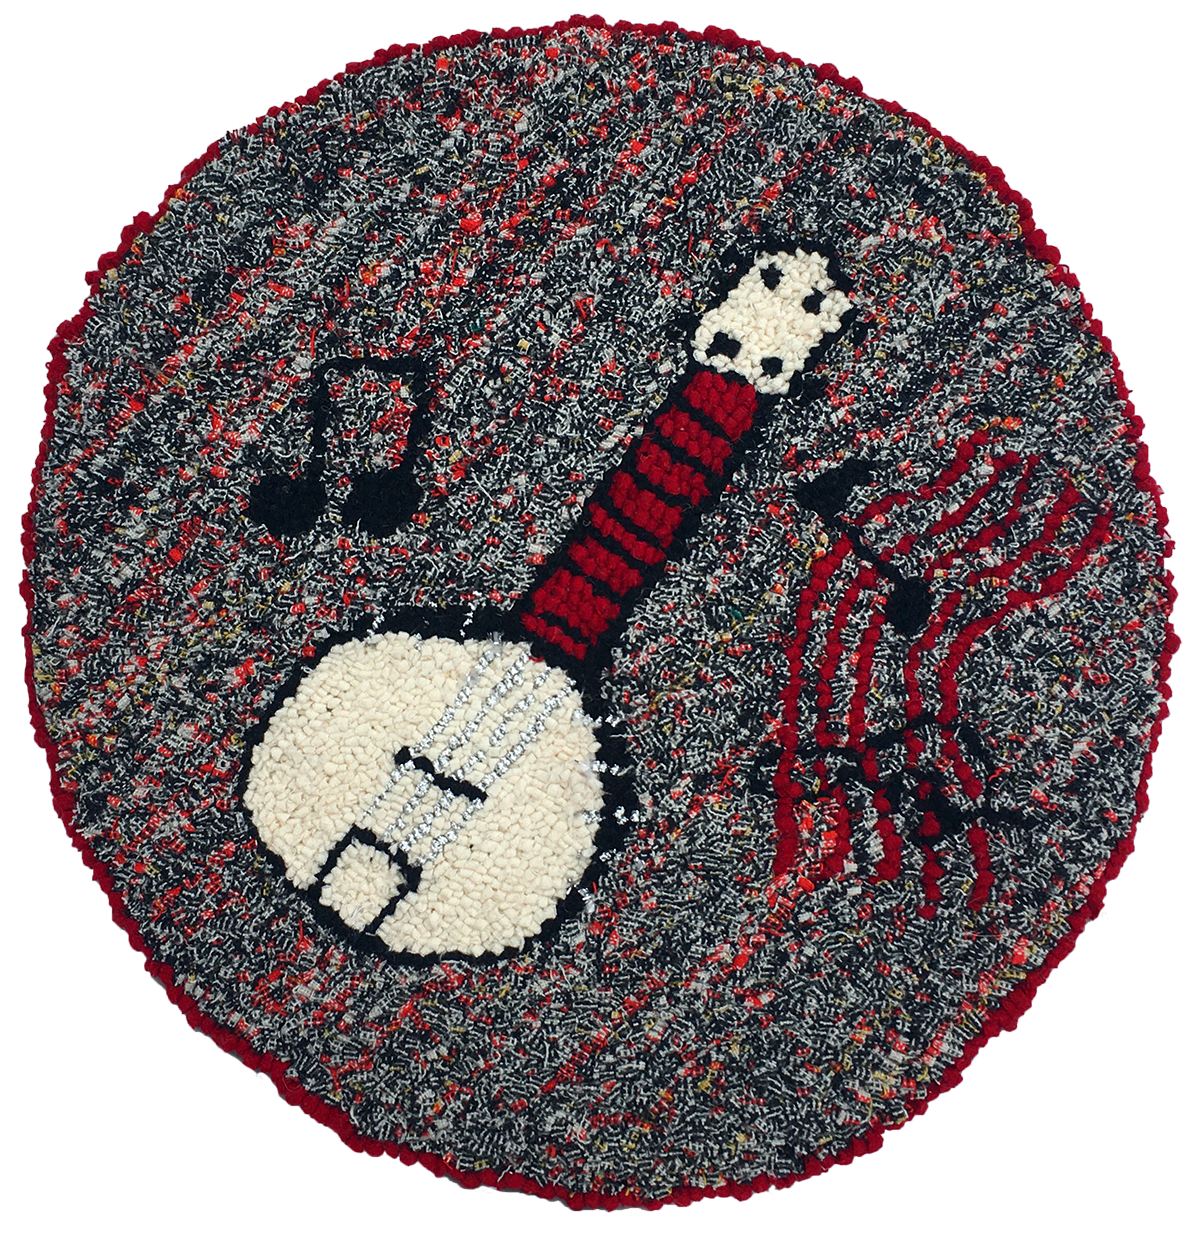 Banjo recycled wool hooked seat cover